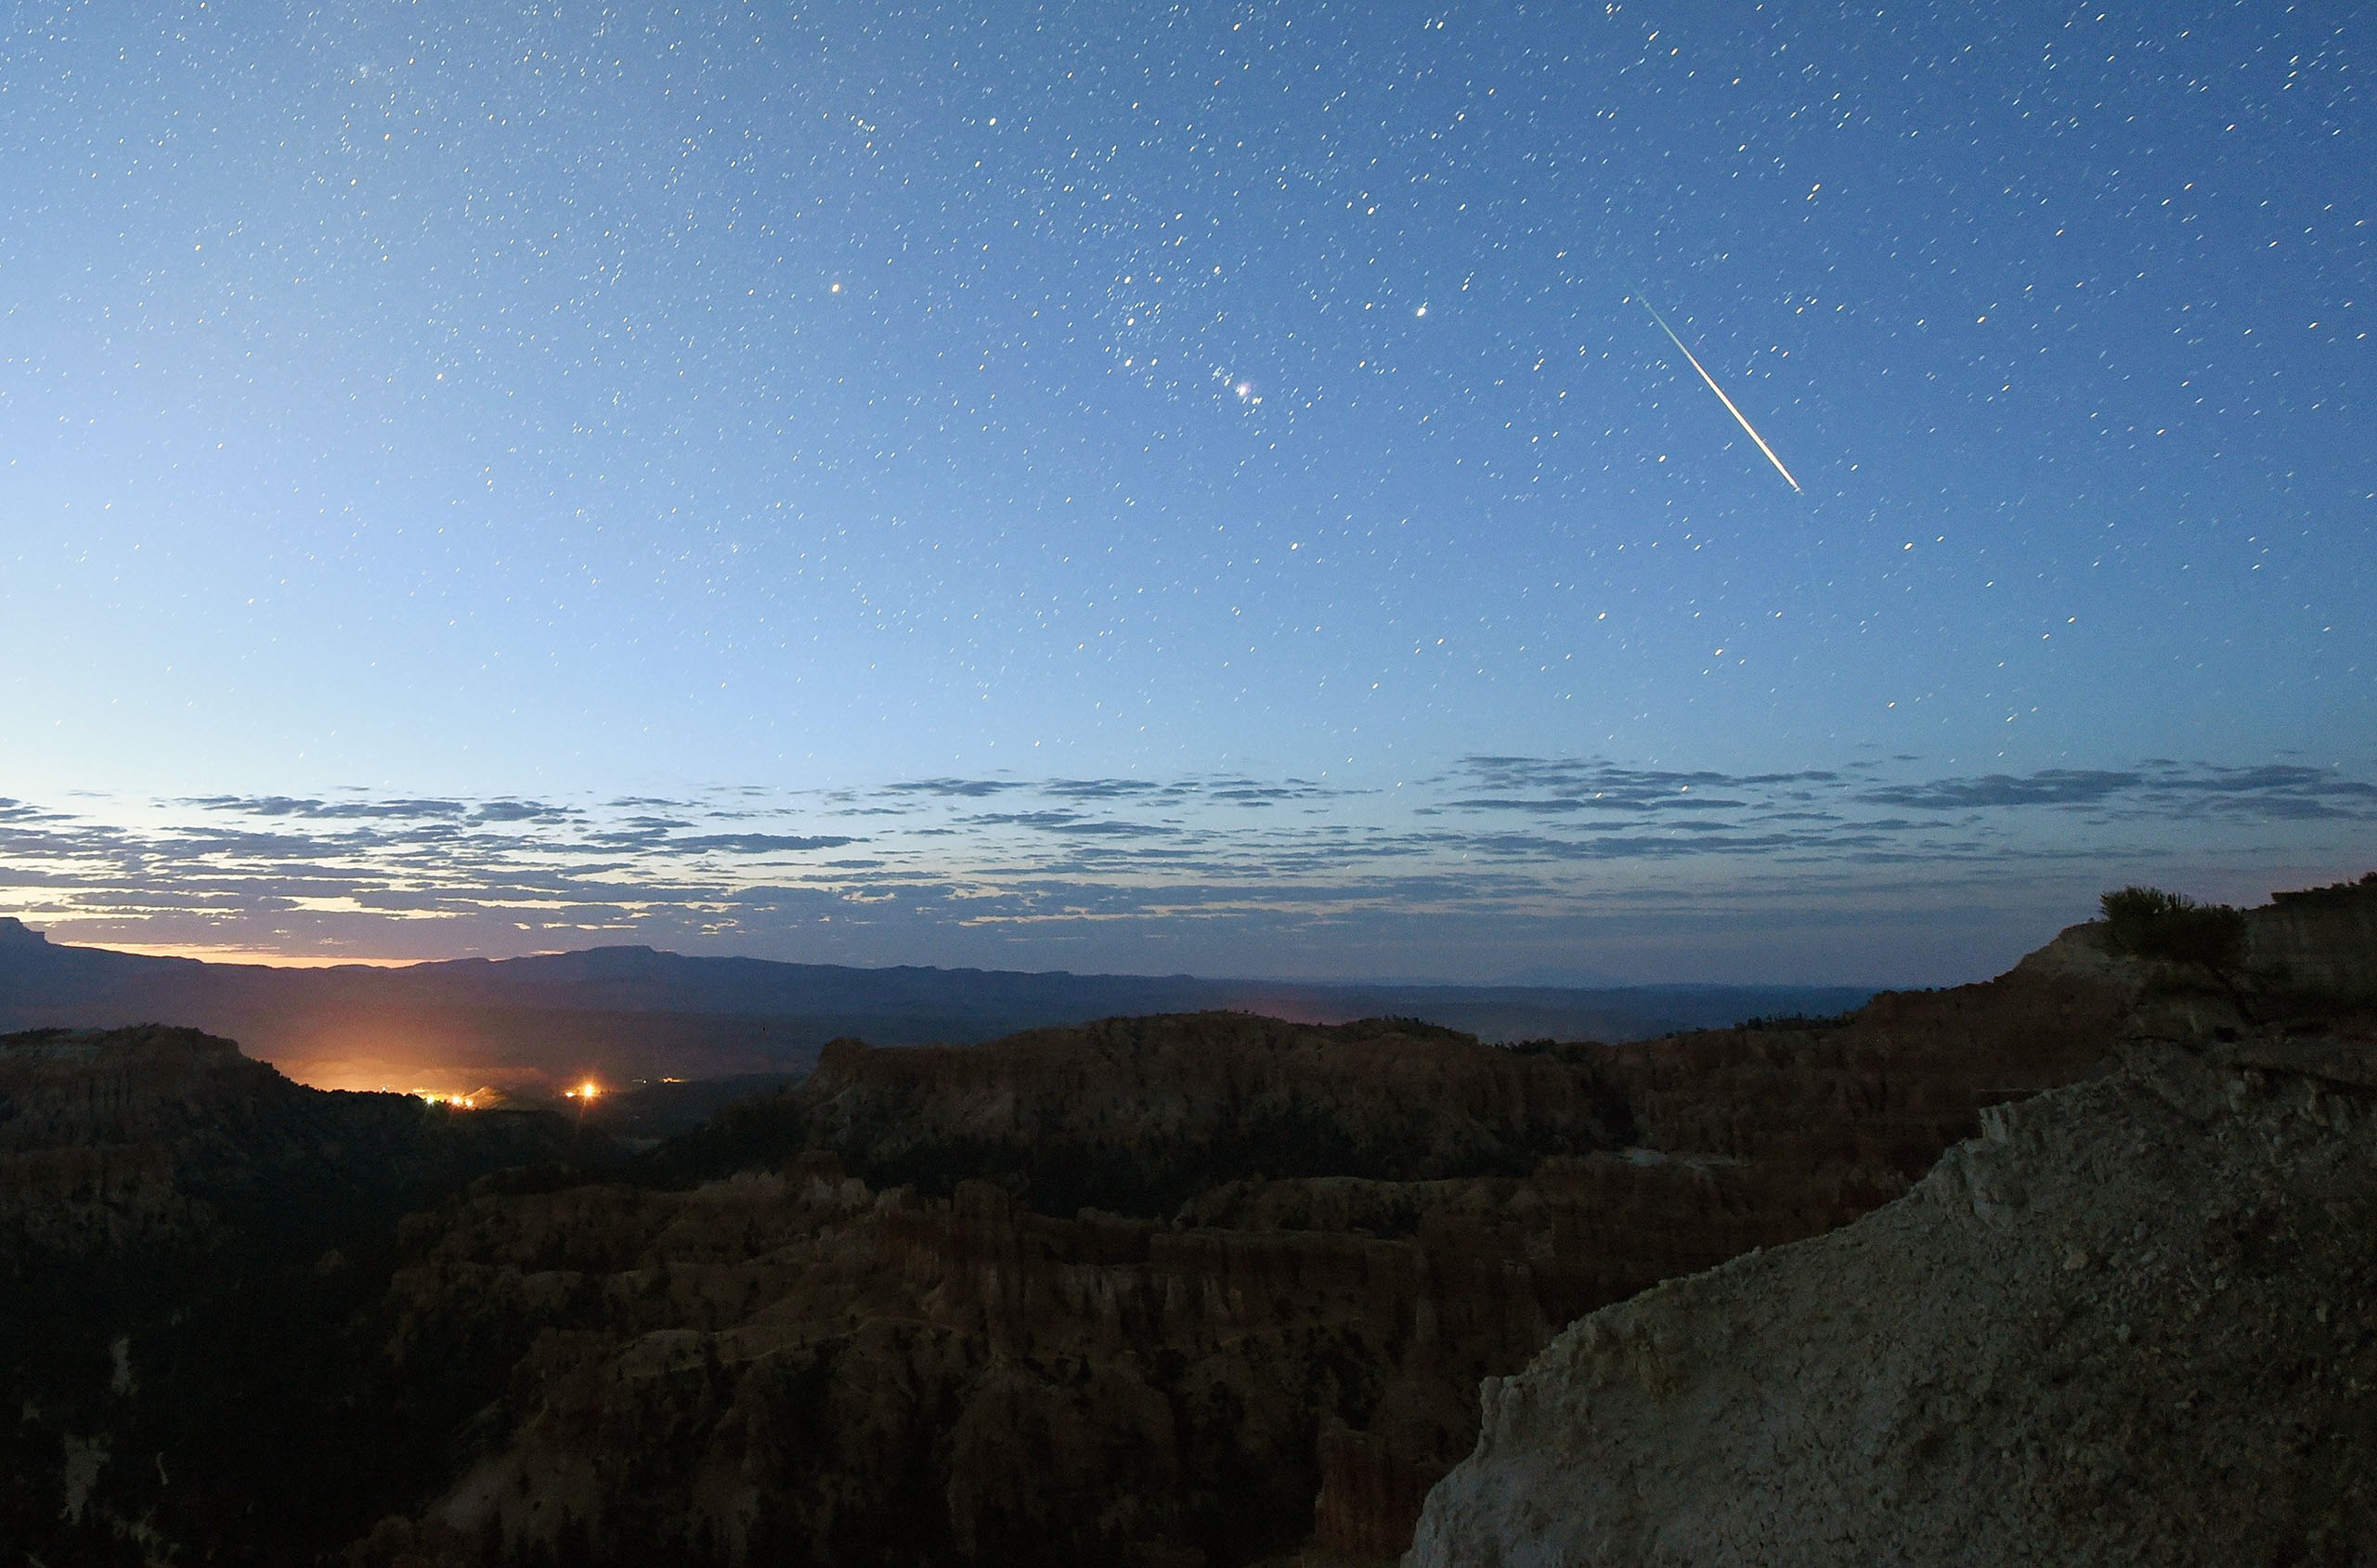 A Perseid meteor streaks across the sky above Inspiration Point in Bryce Canyon National Park, Utah, early on Aug. 12, 2016.